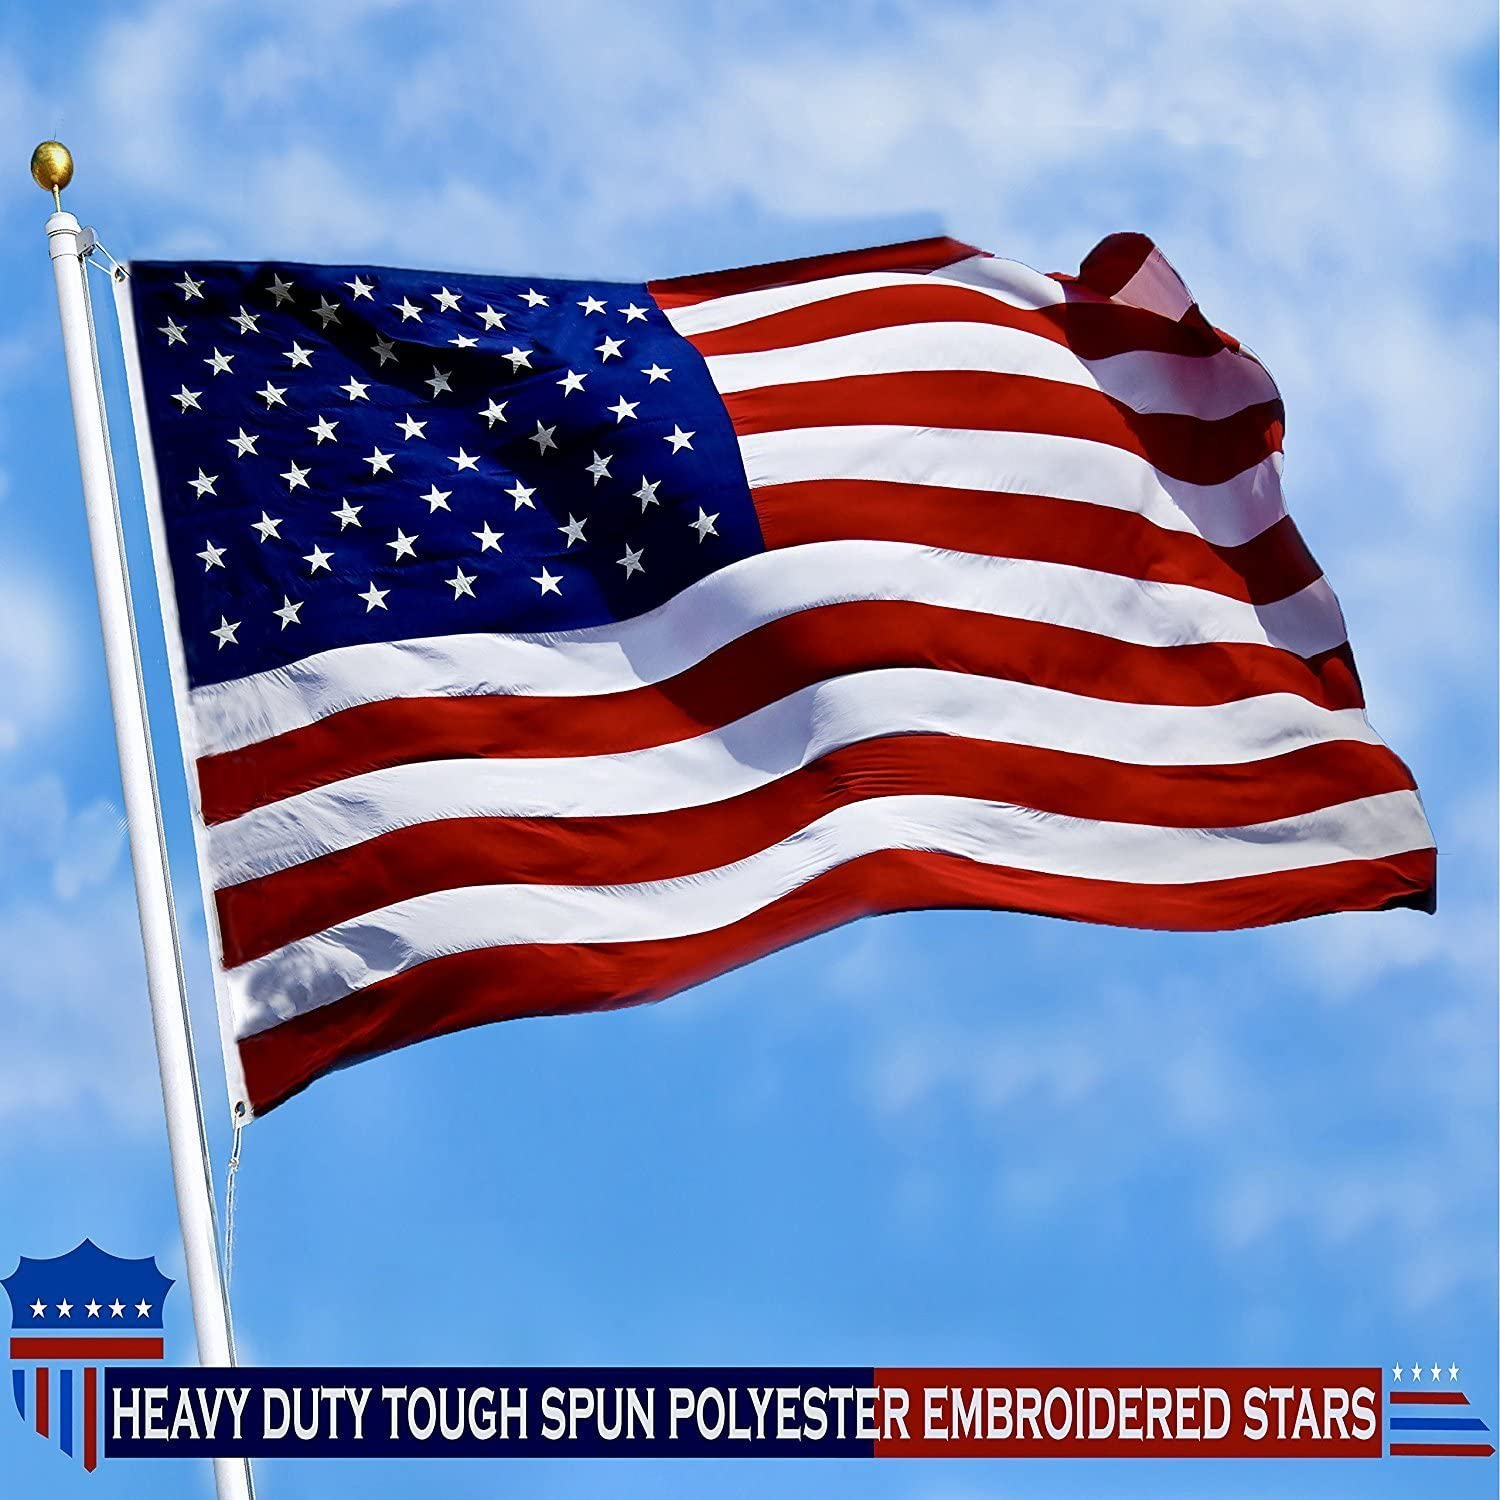 Sewn Stripes 2.5x4 feet Tough American Flag G128 Brass Grommets Heavy Duty Spun Polyester 220GSM Premium US USA Flag Indoor//Outdoor Durable Embroidered Stars Vibrant Colors